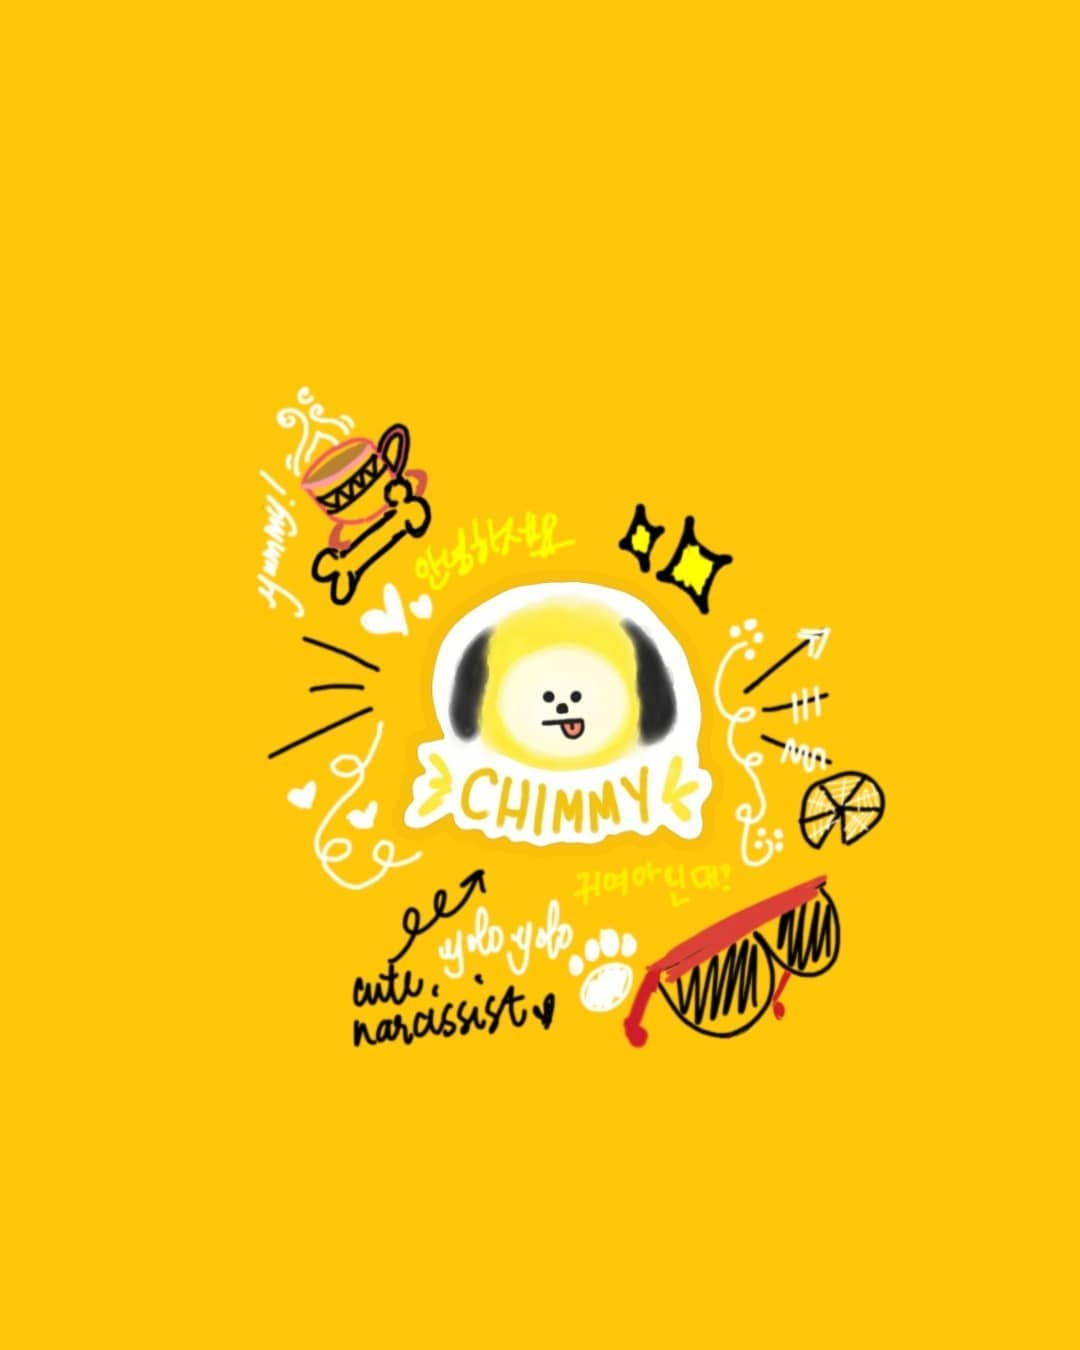 Chimmy BT21 Wallpapers - Wallpaper Cave